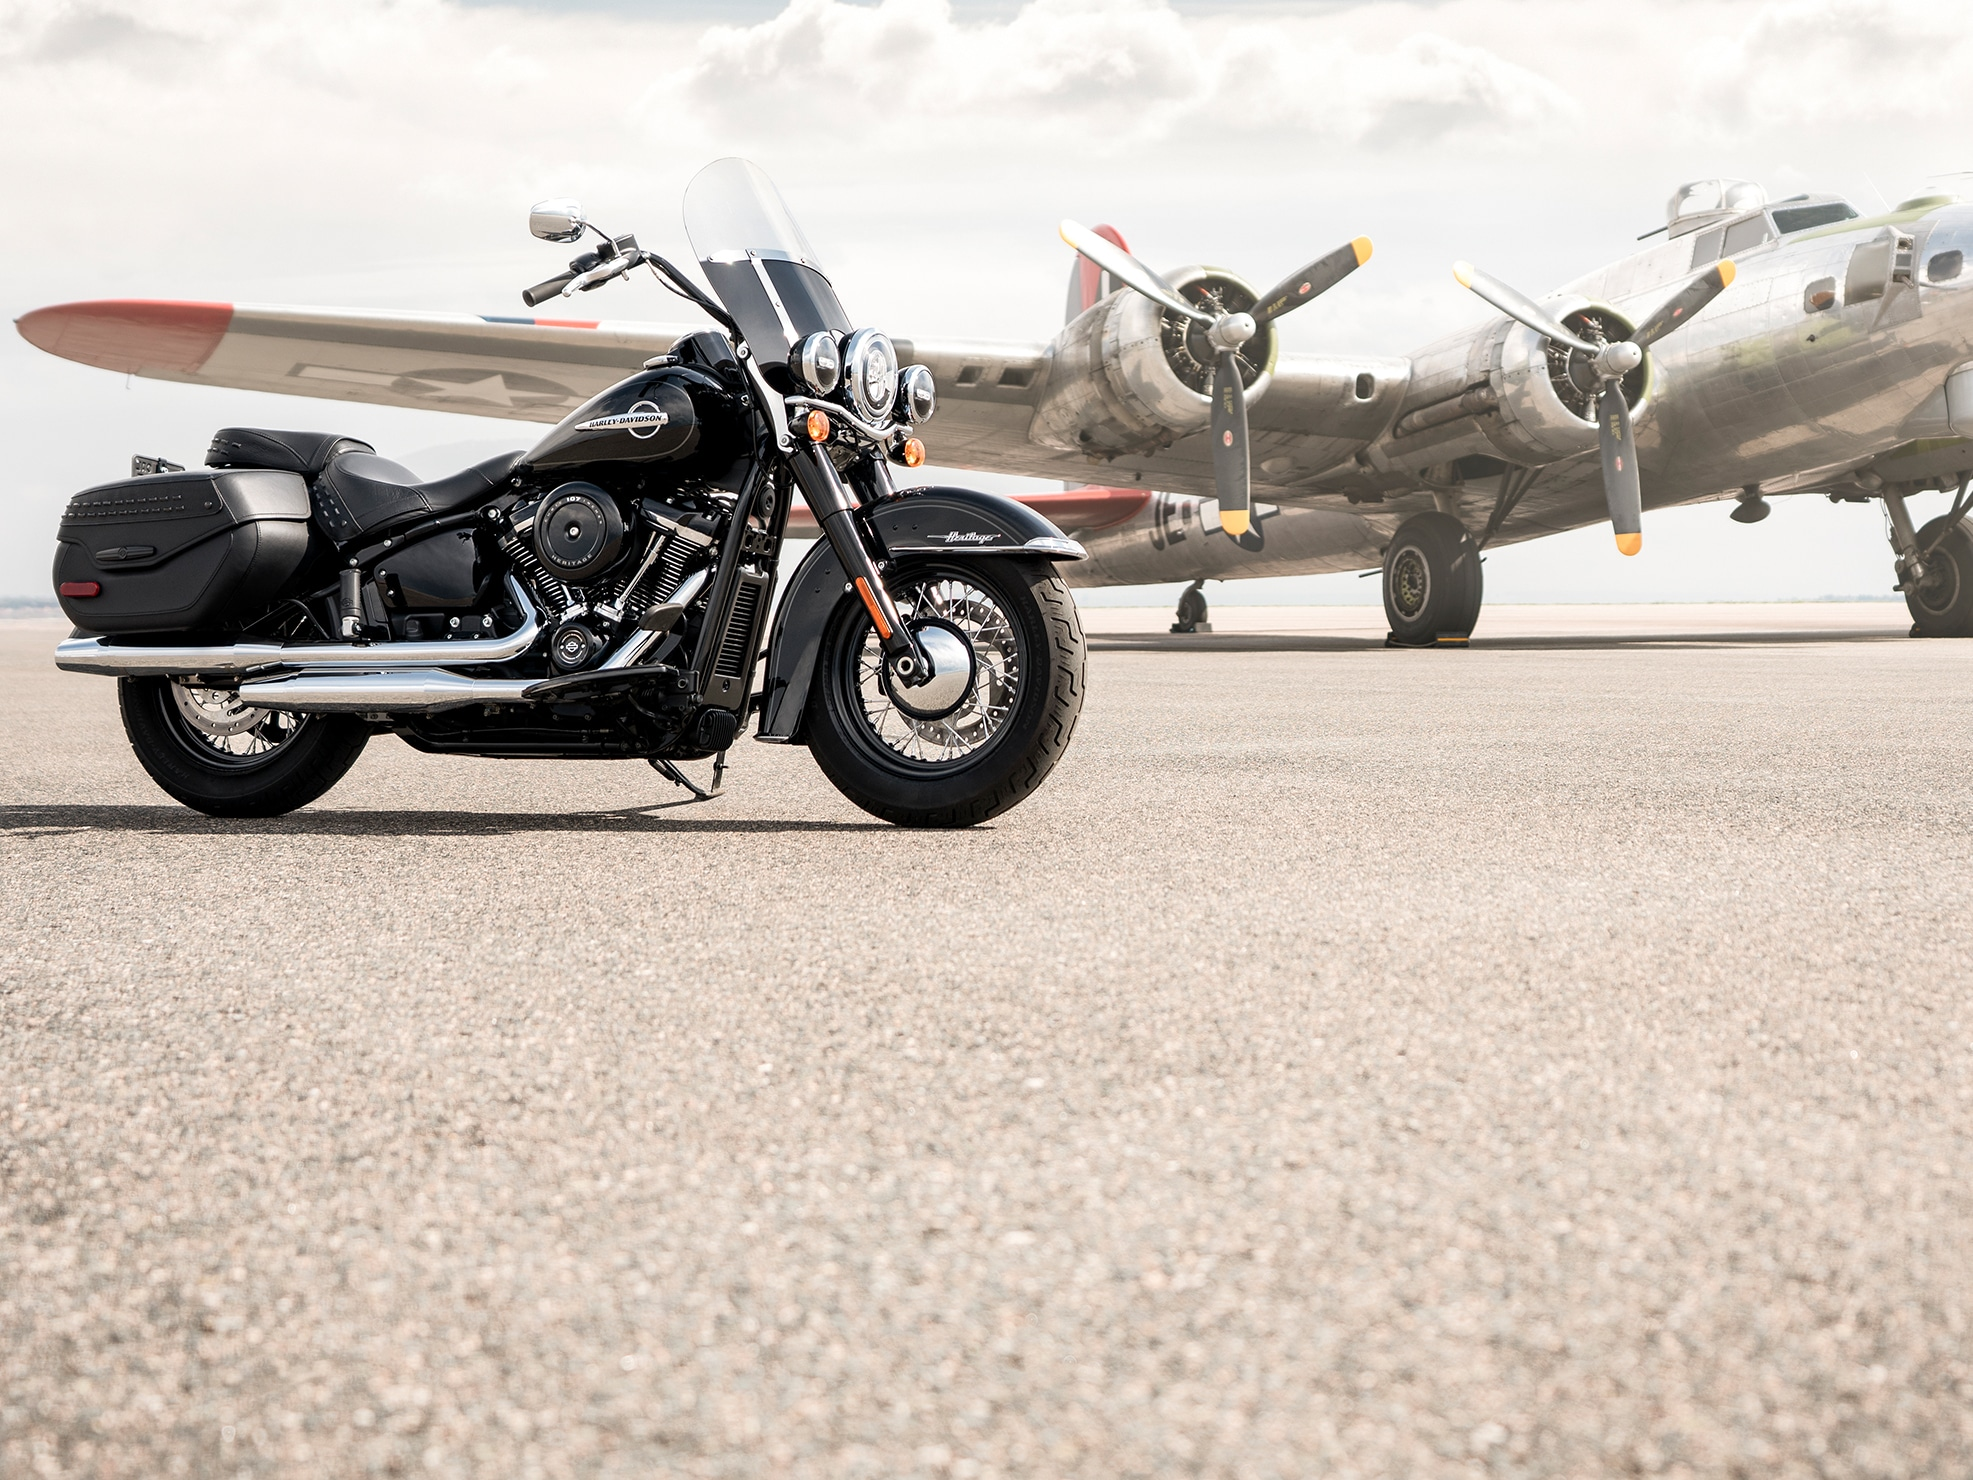 2019 H-D Softail motorcycle Parked in Front of a Plane